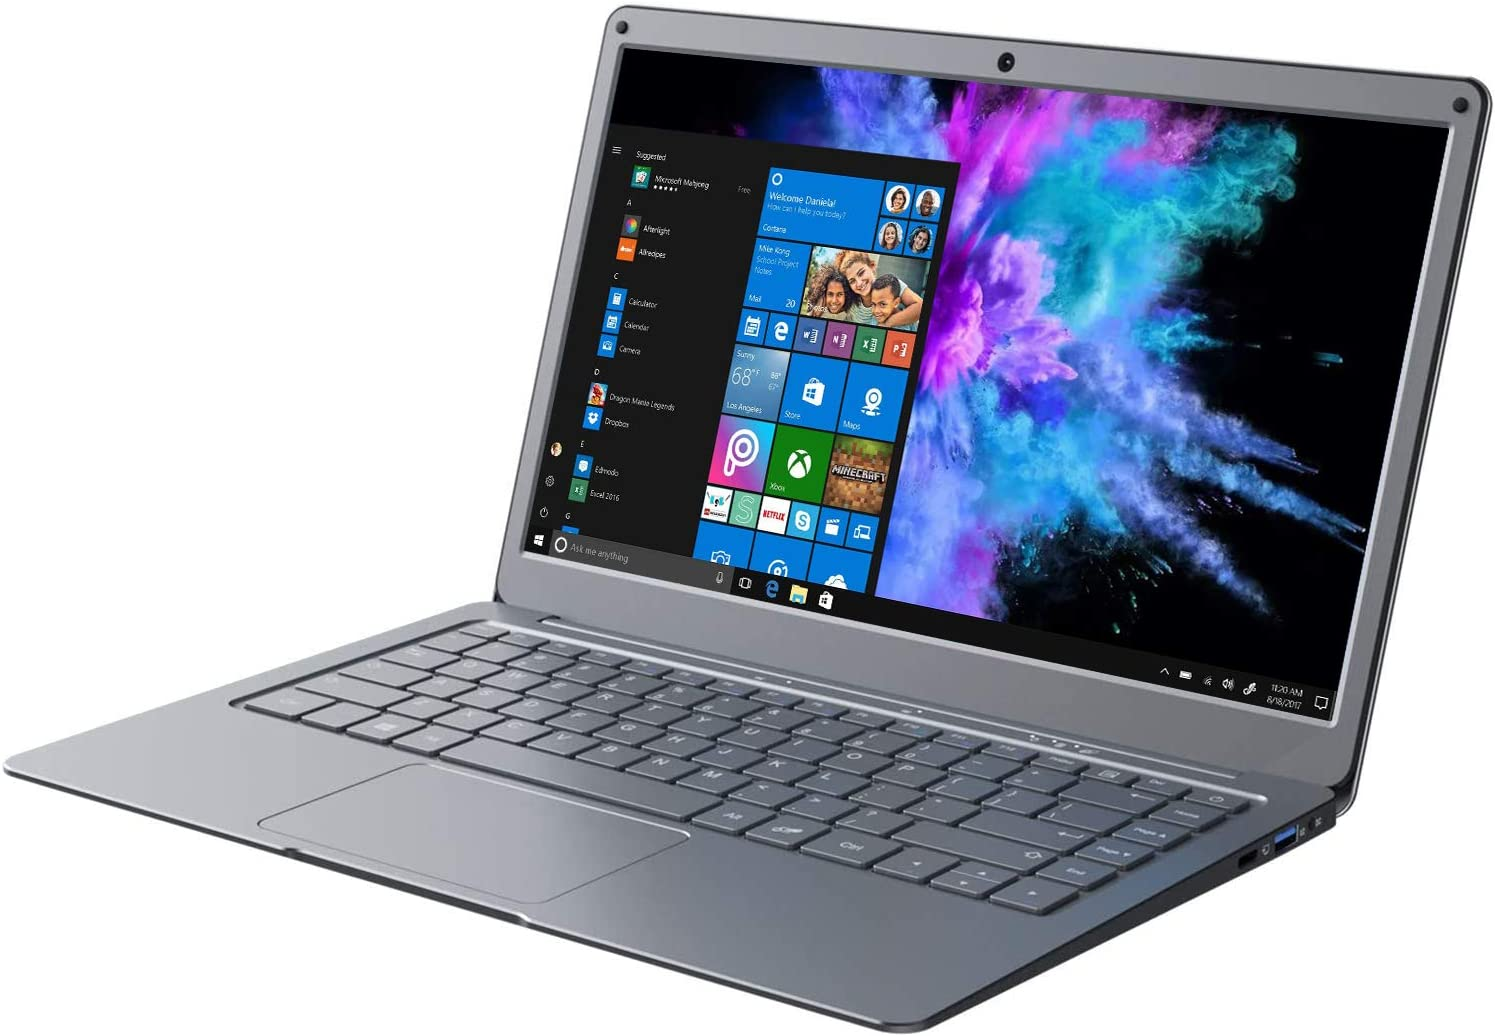 Jumper Laptop Computers 13.3 Inch 8GB RAM 256GB ROM Quad Core Celeron, Windows 10 Thin and Light Laptop, Full HD 1080P Display, Support 256GB TF Cardand 1TB SSD Expansion